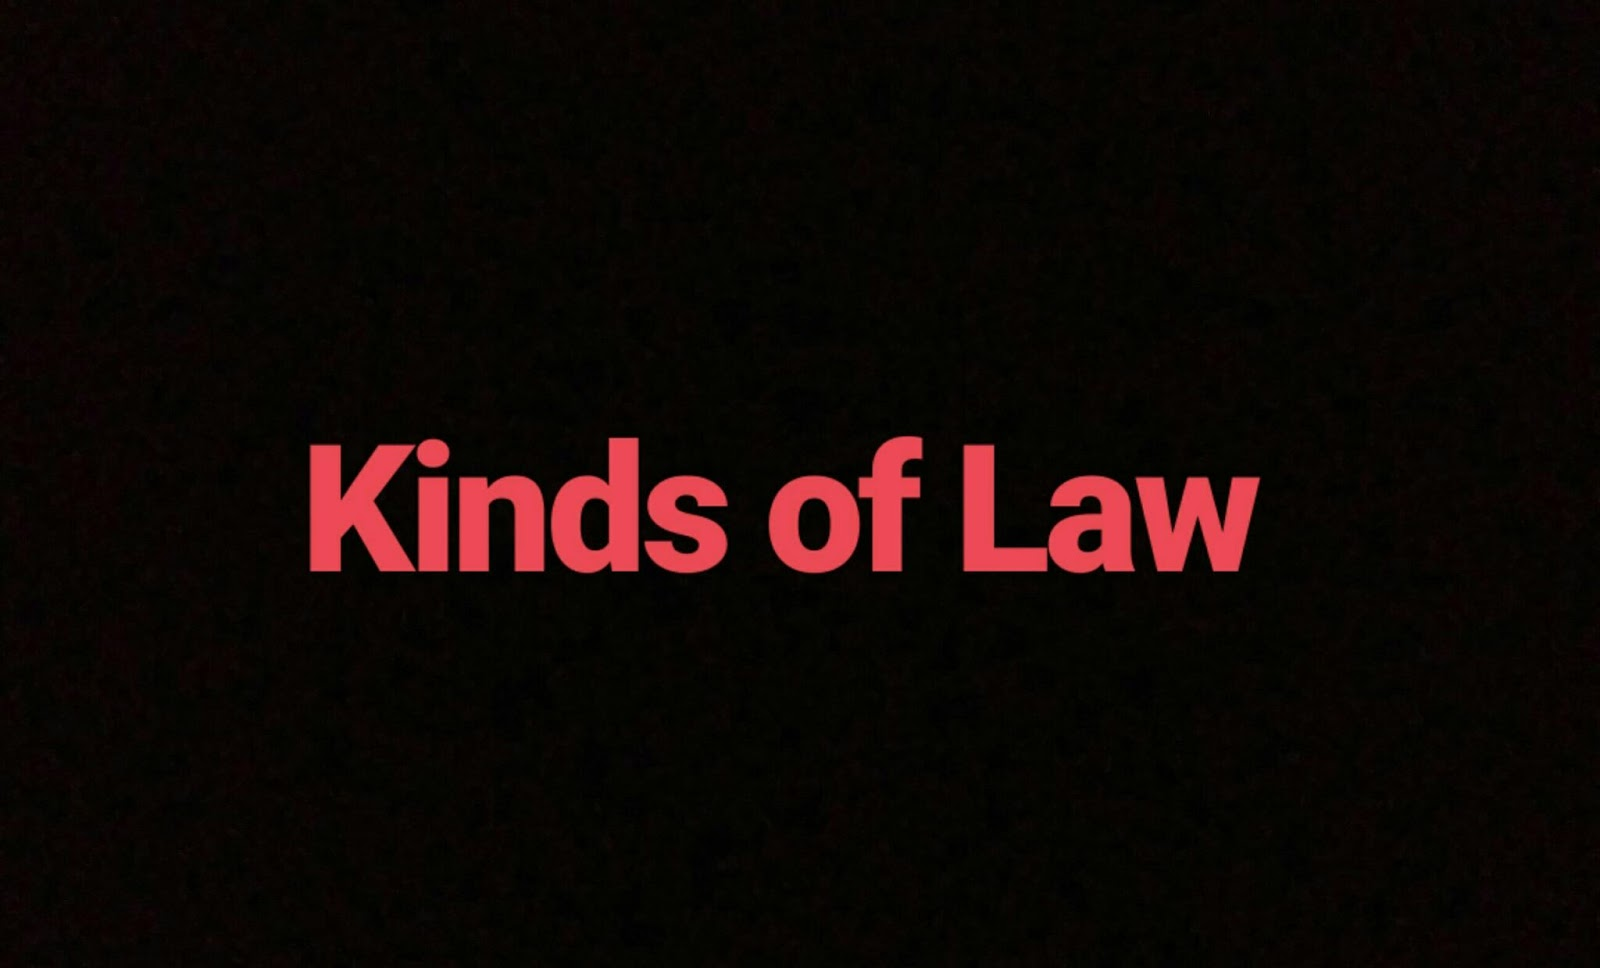 Kinds Of Law: Procedural and Substantive Law